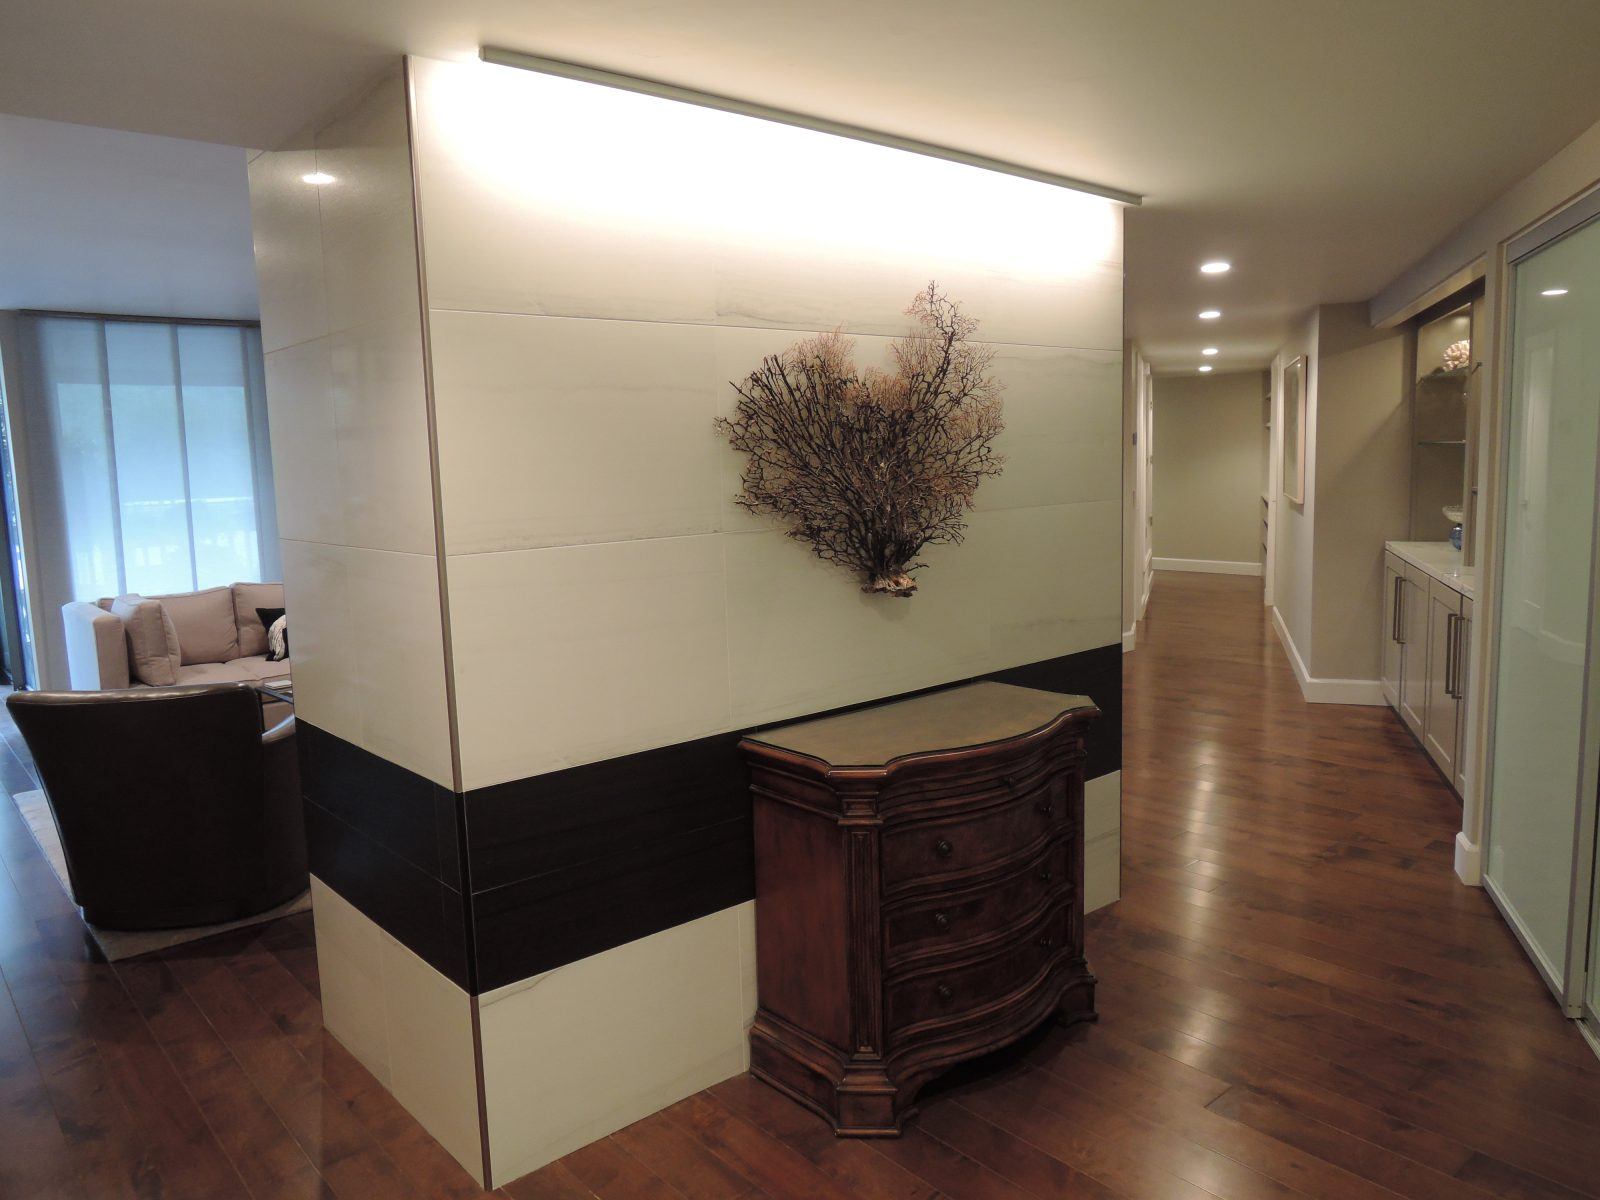 Condo Entry Full Remodel Inside Out Designs